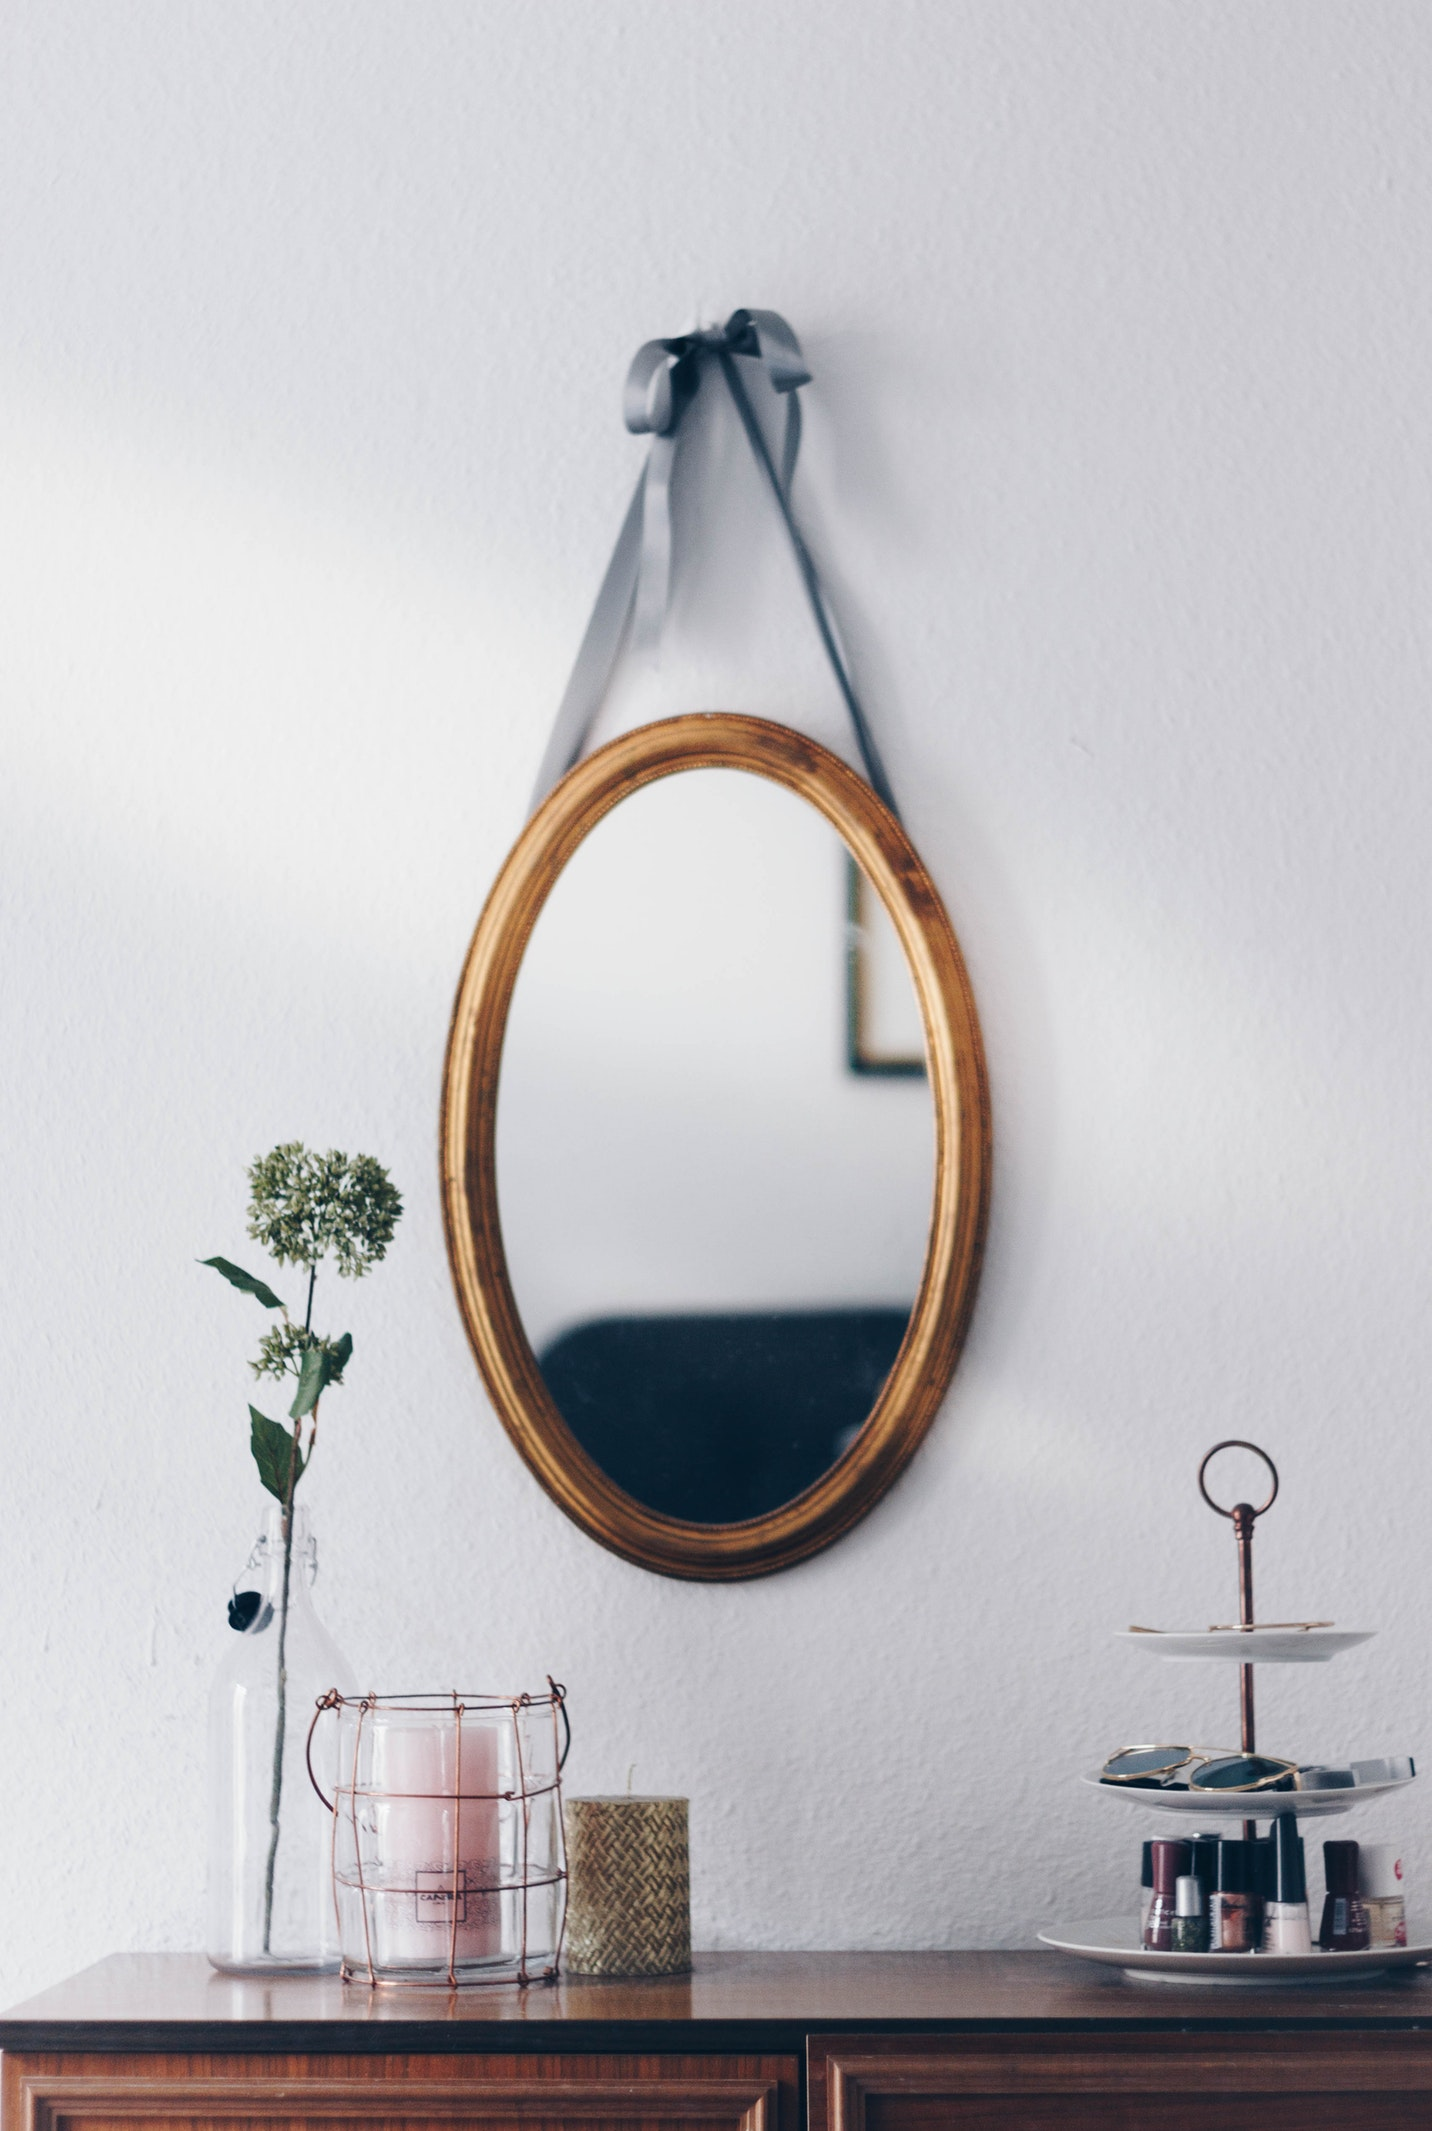 Shop beautiful antique and traditional mirrors at dalisay.com.au